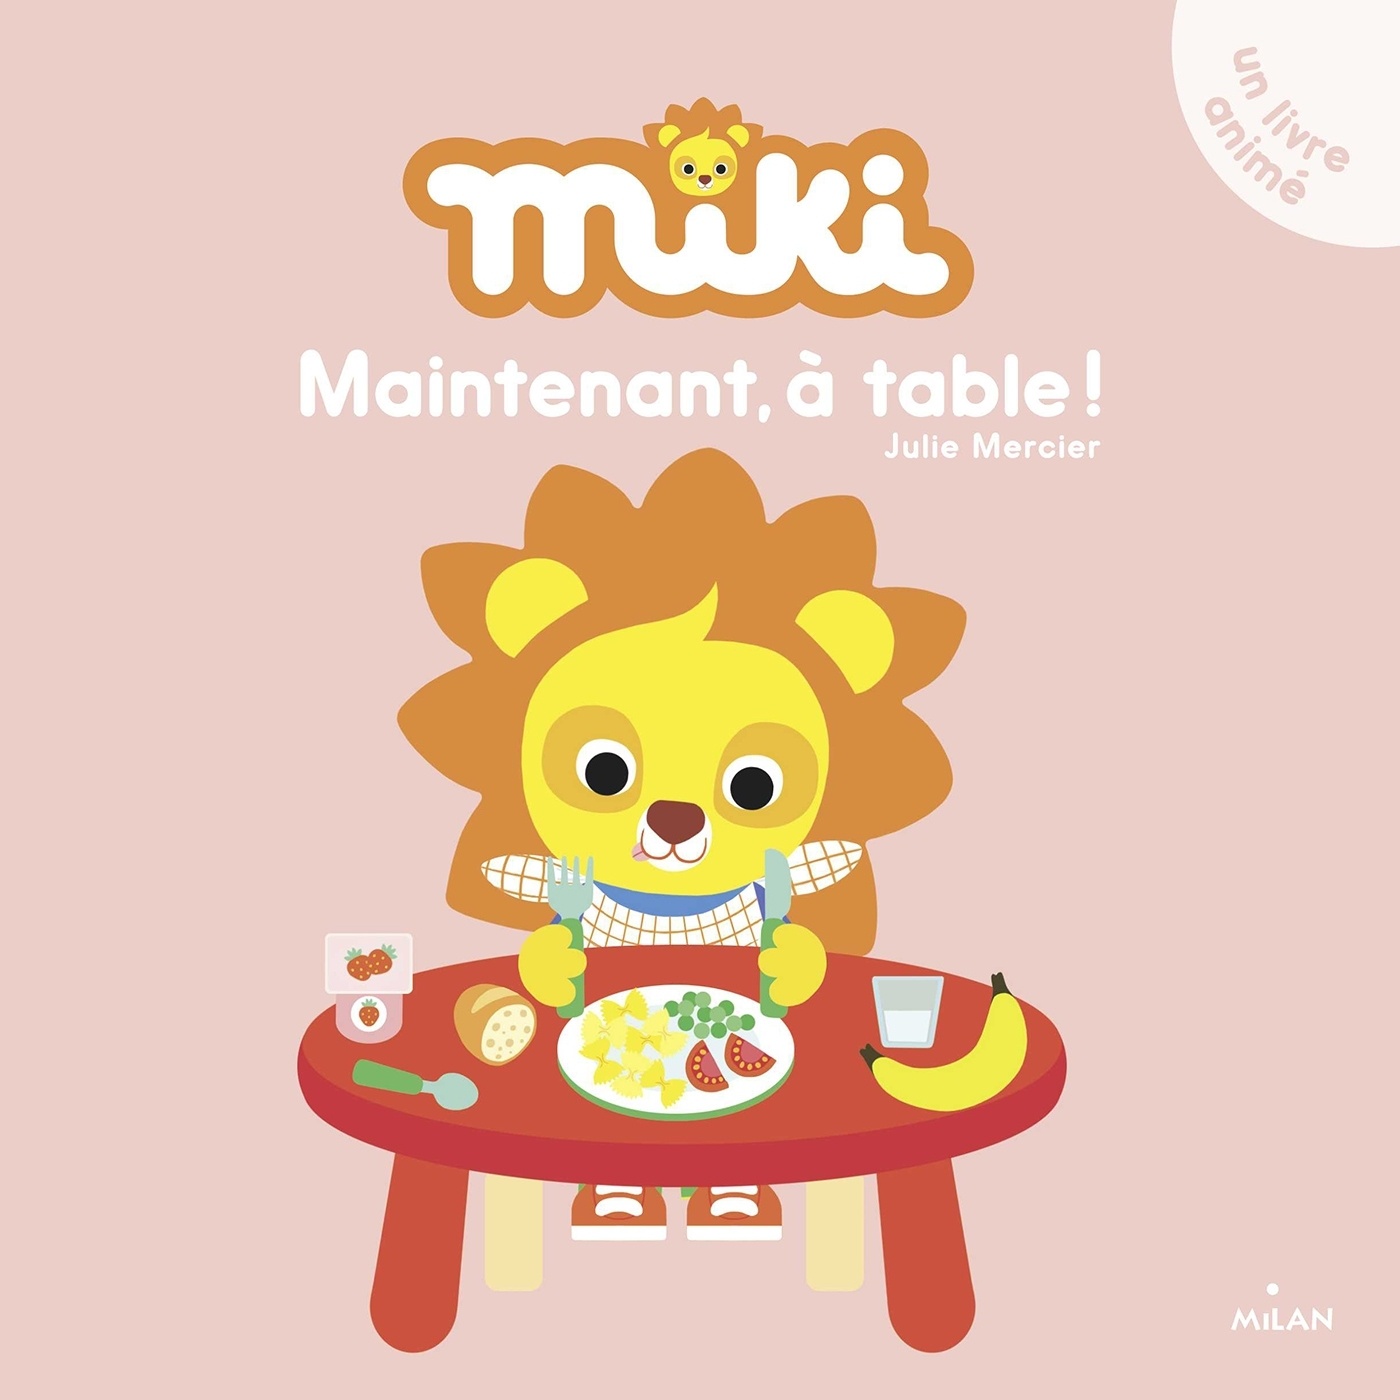 MIKI - MAINTENANT, A TABLE !